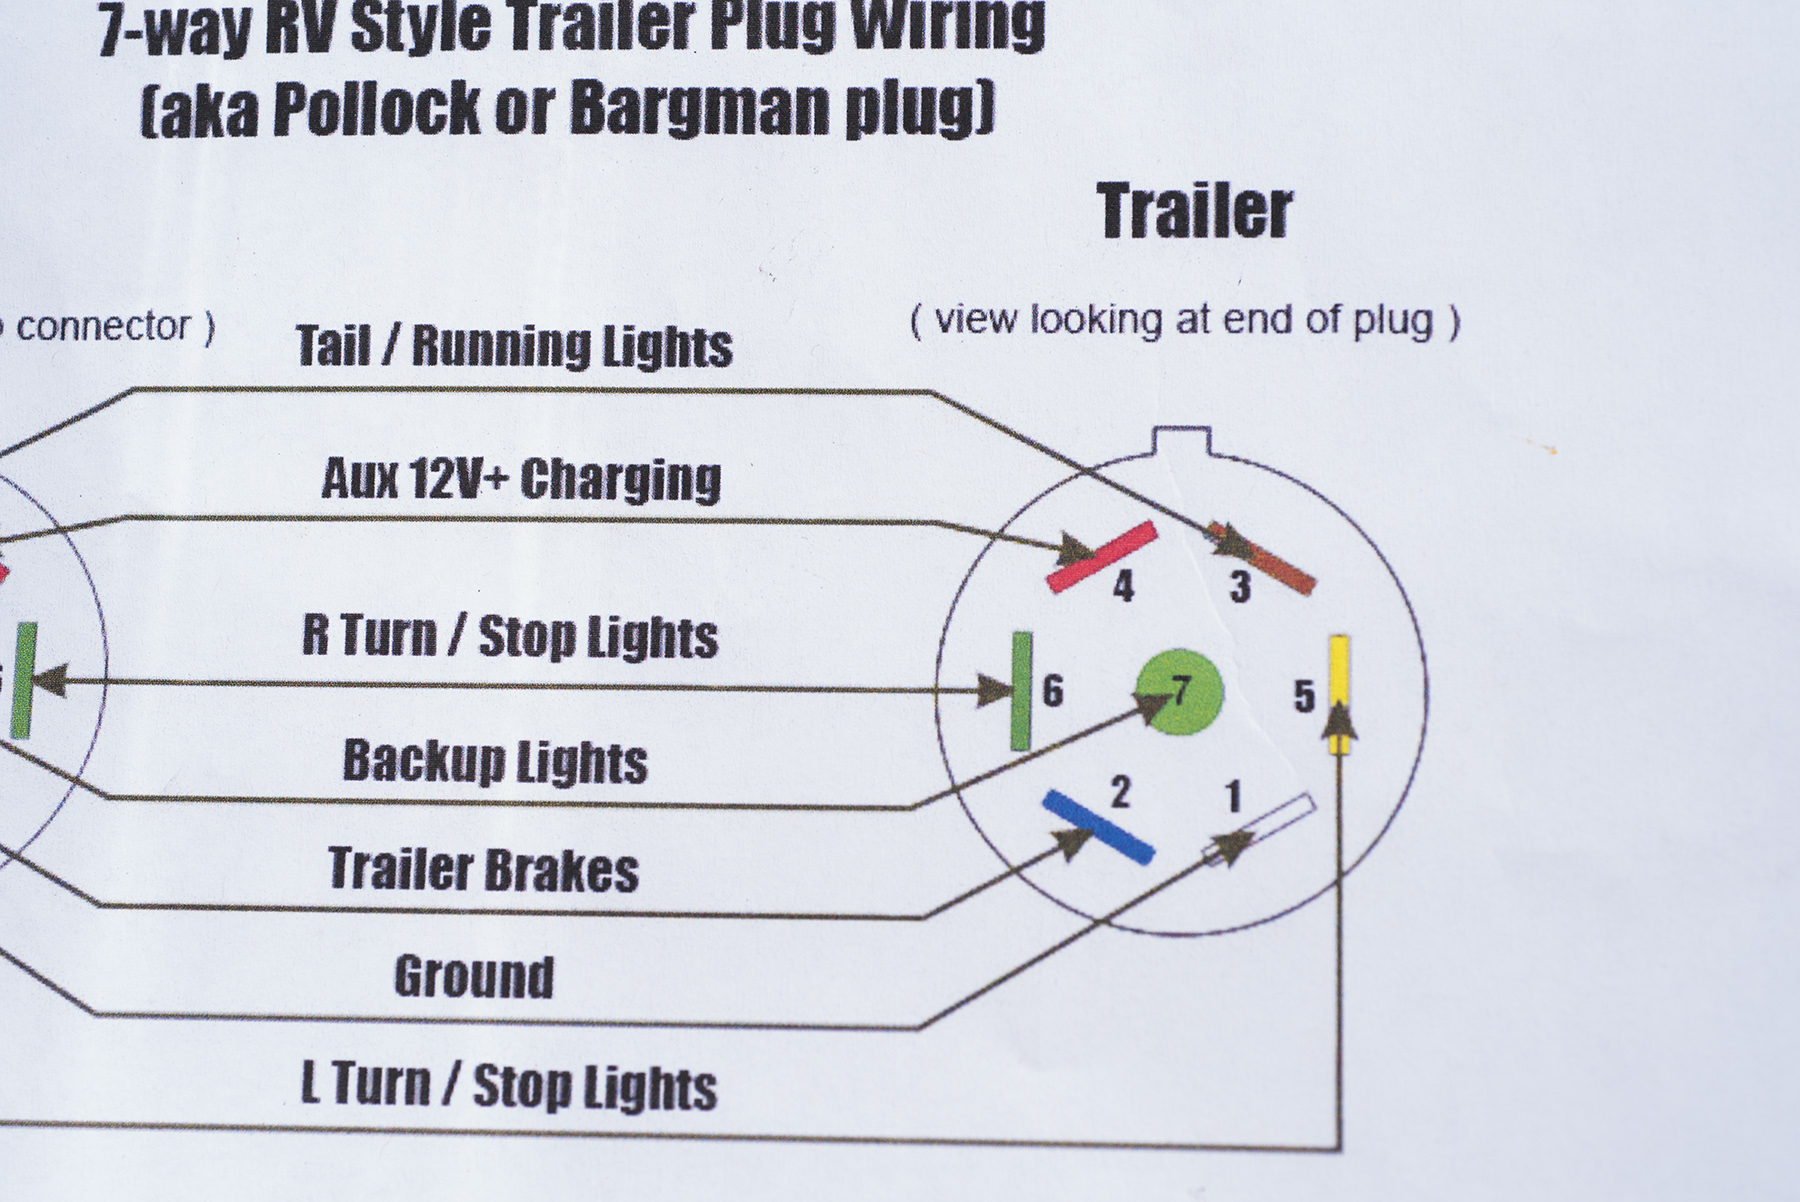 7 Pin Trailer Wiring Diagram Pickup | Wiring Diagram - 7 Way Trailer Plug Wiring Diagram Dodge